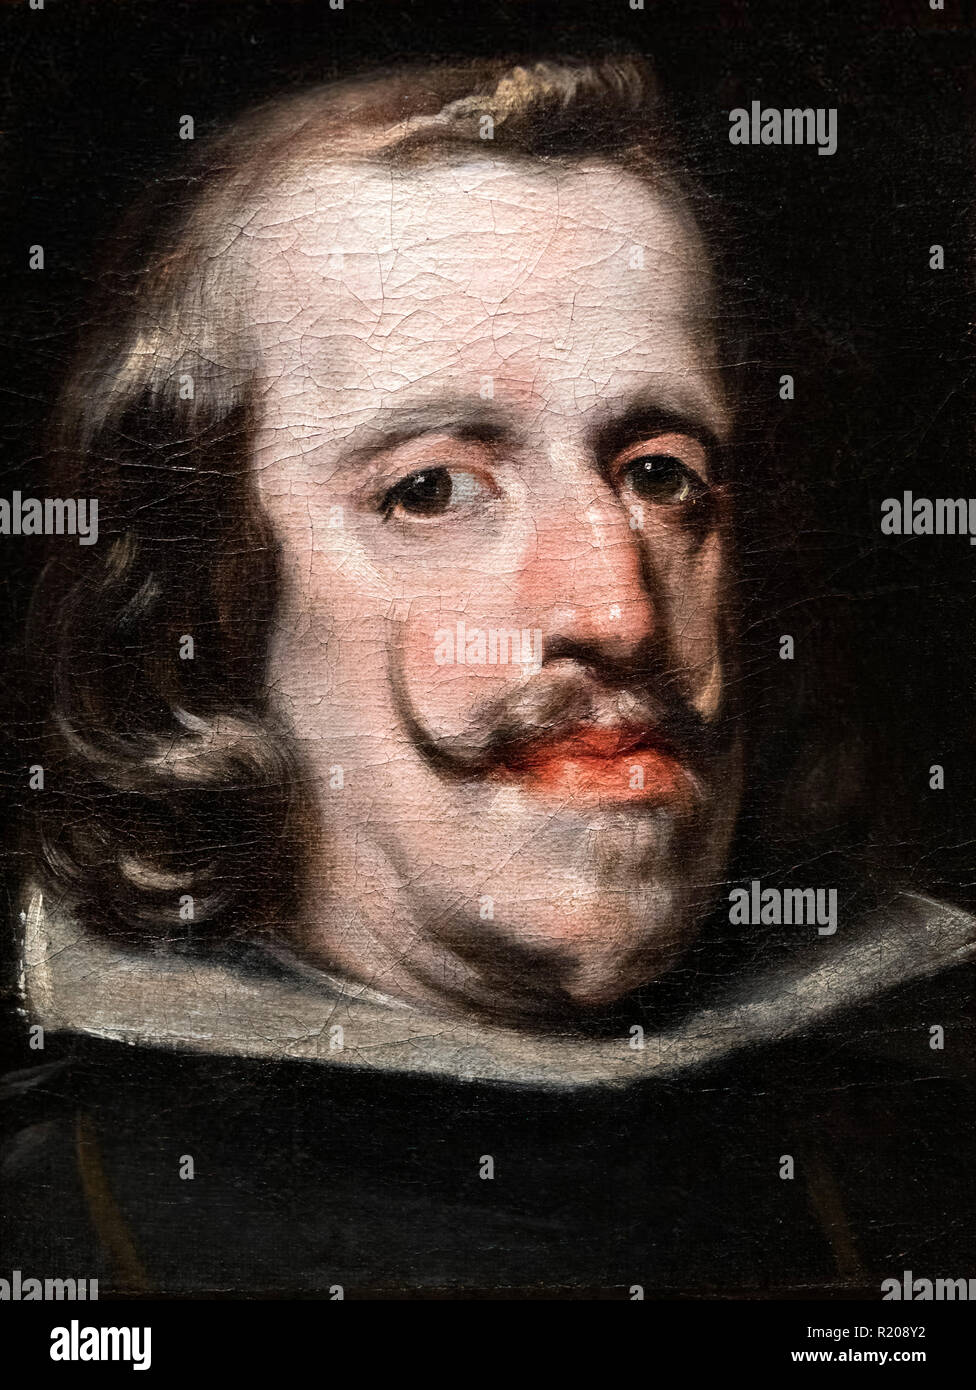 King Philip IV of Spain by circle of Diego Velazquez, oil on canvas, c.1655 - Stock Image